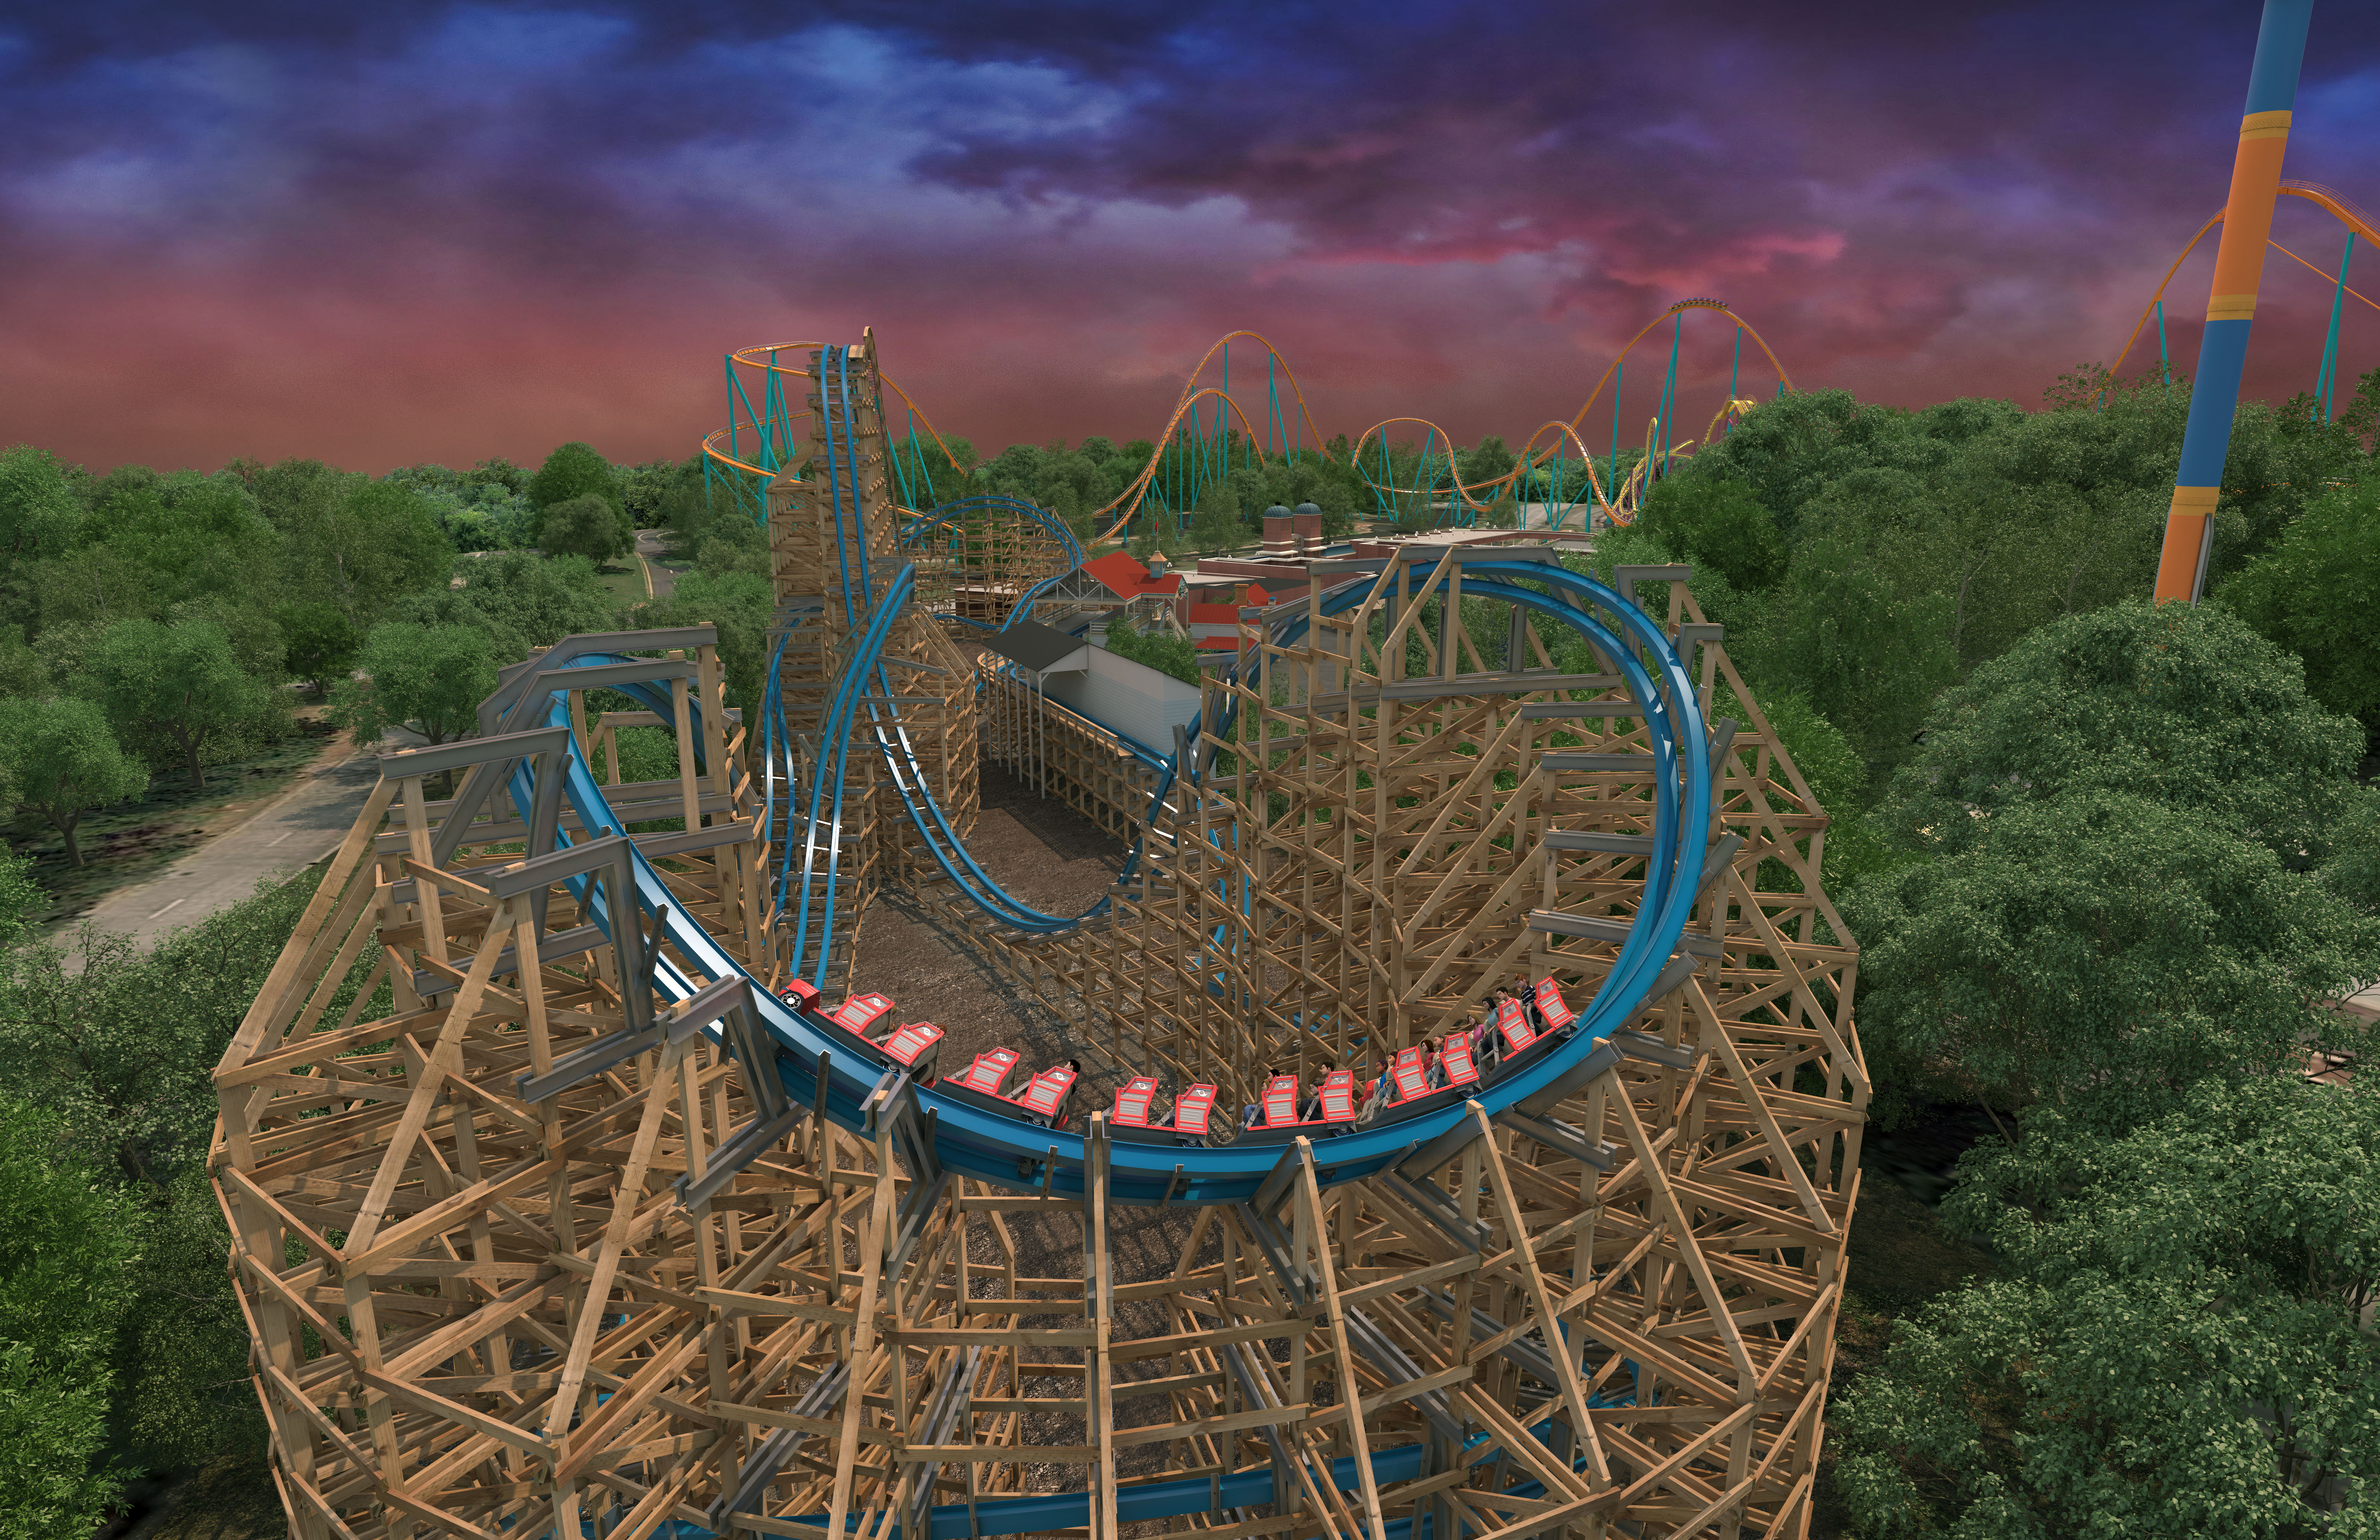 Twisted Cyclone at Six Flags Over Georgia – just outside of Atlanta – will feature three inversions, which will send guests flipping head-over-heels, plus 10 airtime moments, a reverse cobra roll and other features, while riding along a steel track on a wooden roller coaster structure. Twisted Cyclone is set to debut in the spring of 2018.